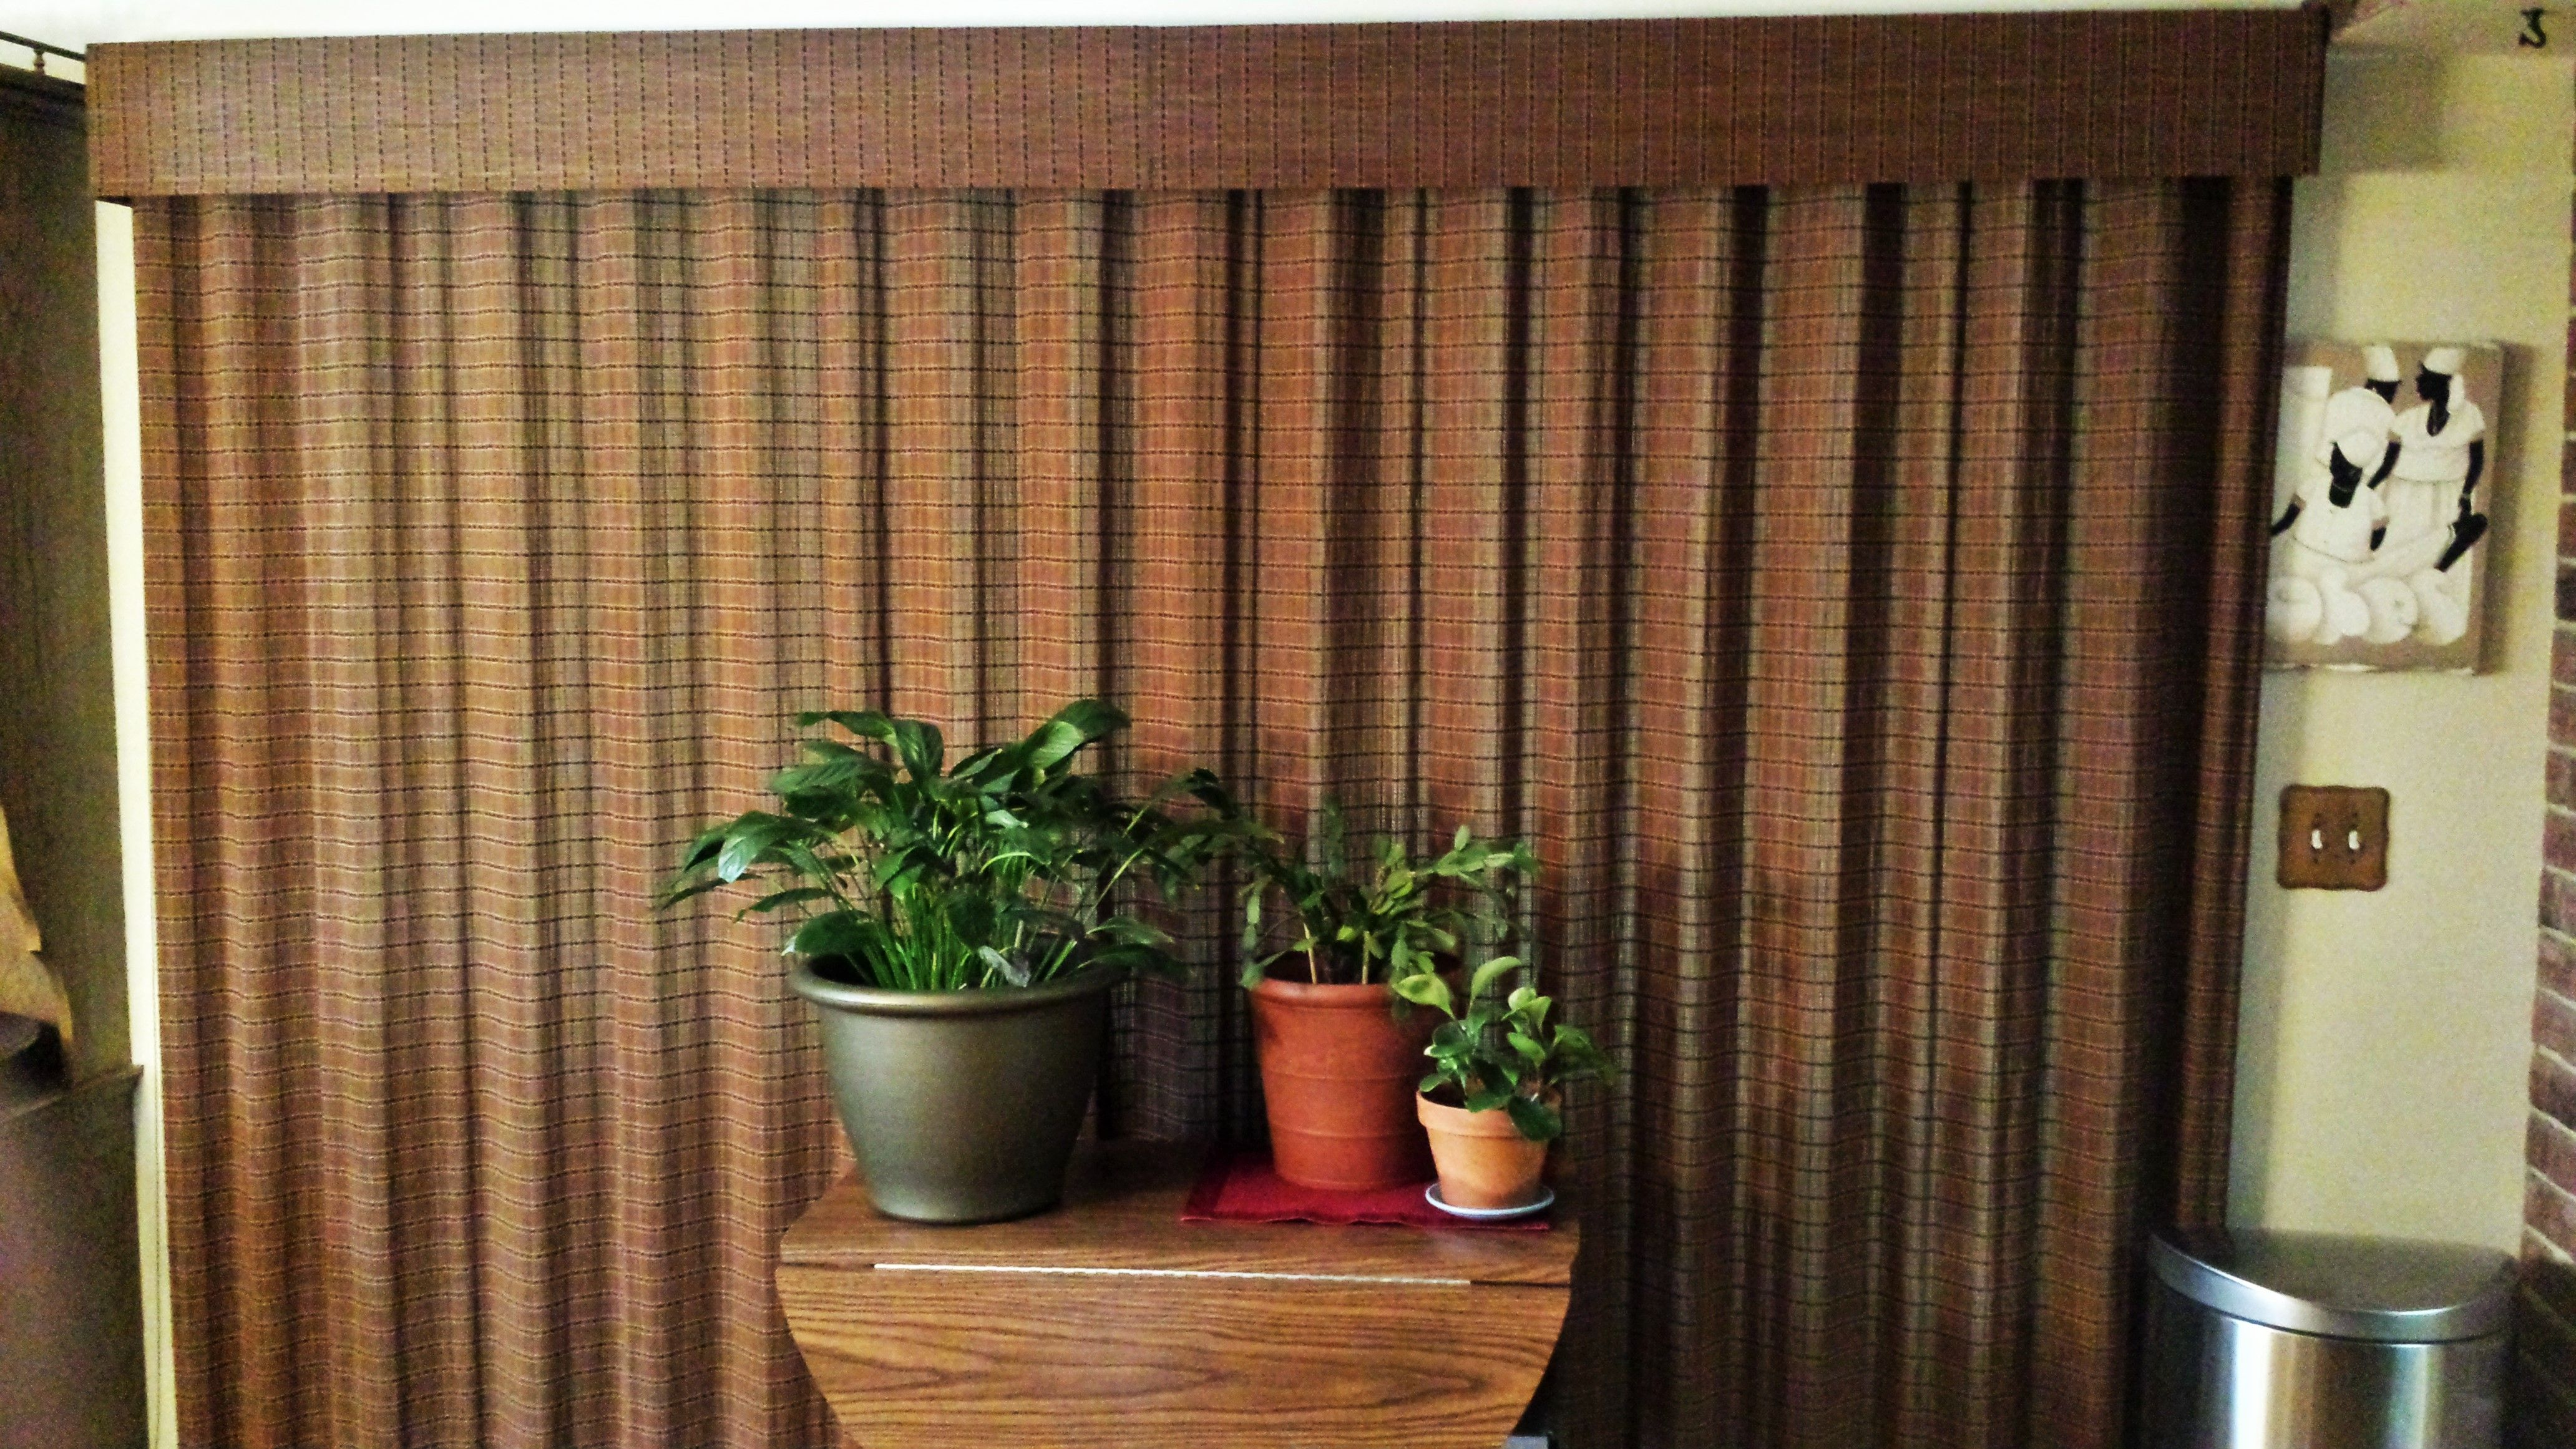 Hunter Douglas Provenance Woven Wood Vertical Drapery With Standard Cord  Control Over Patio Door In Kitchen/eating Area Of Home In Saint Louis Park,  MN.